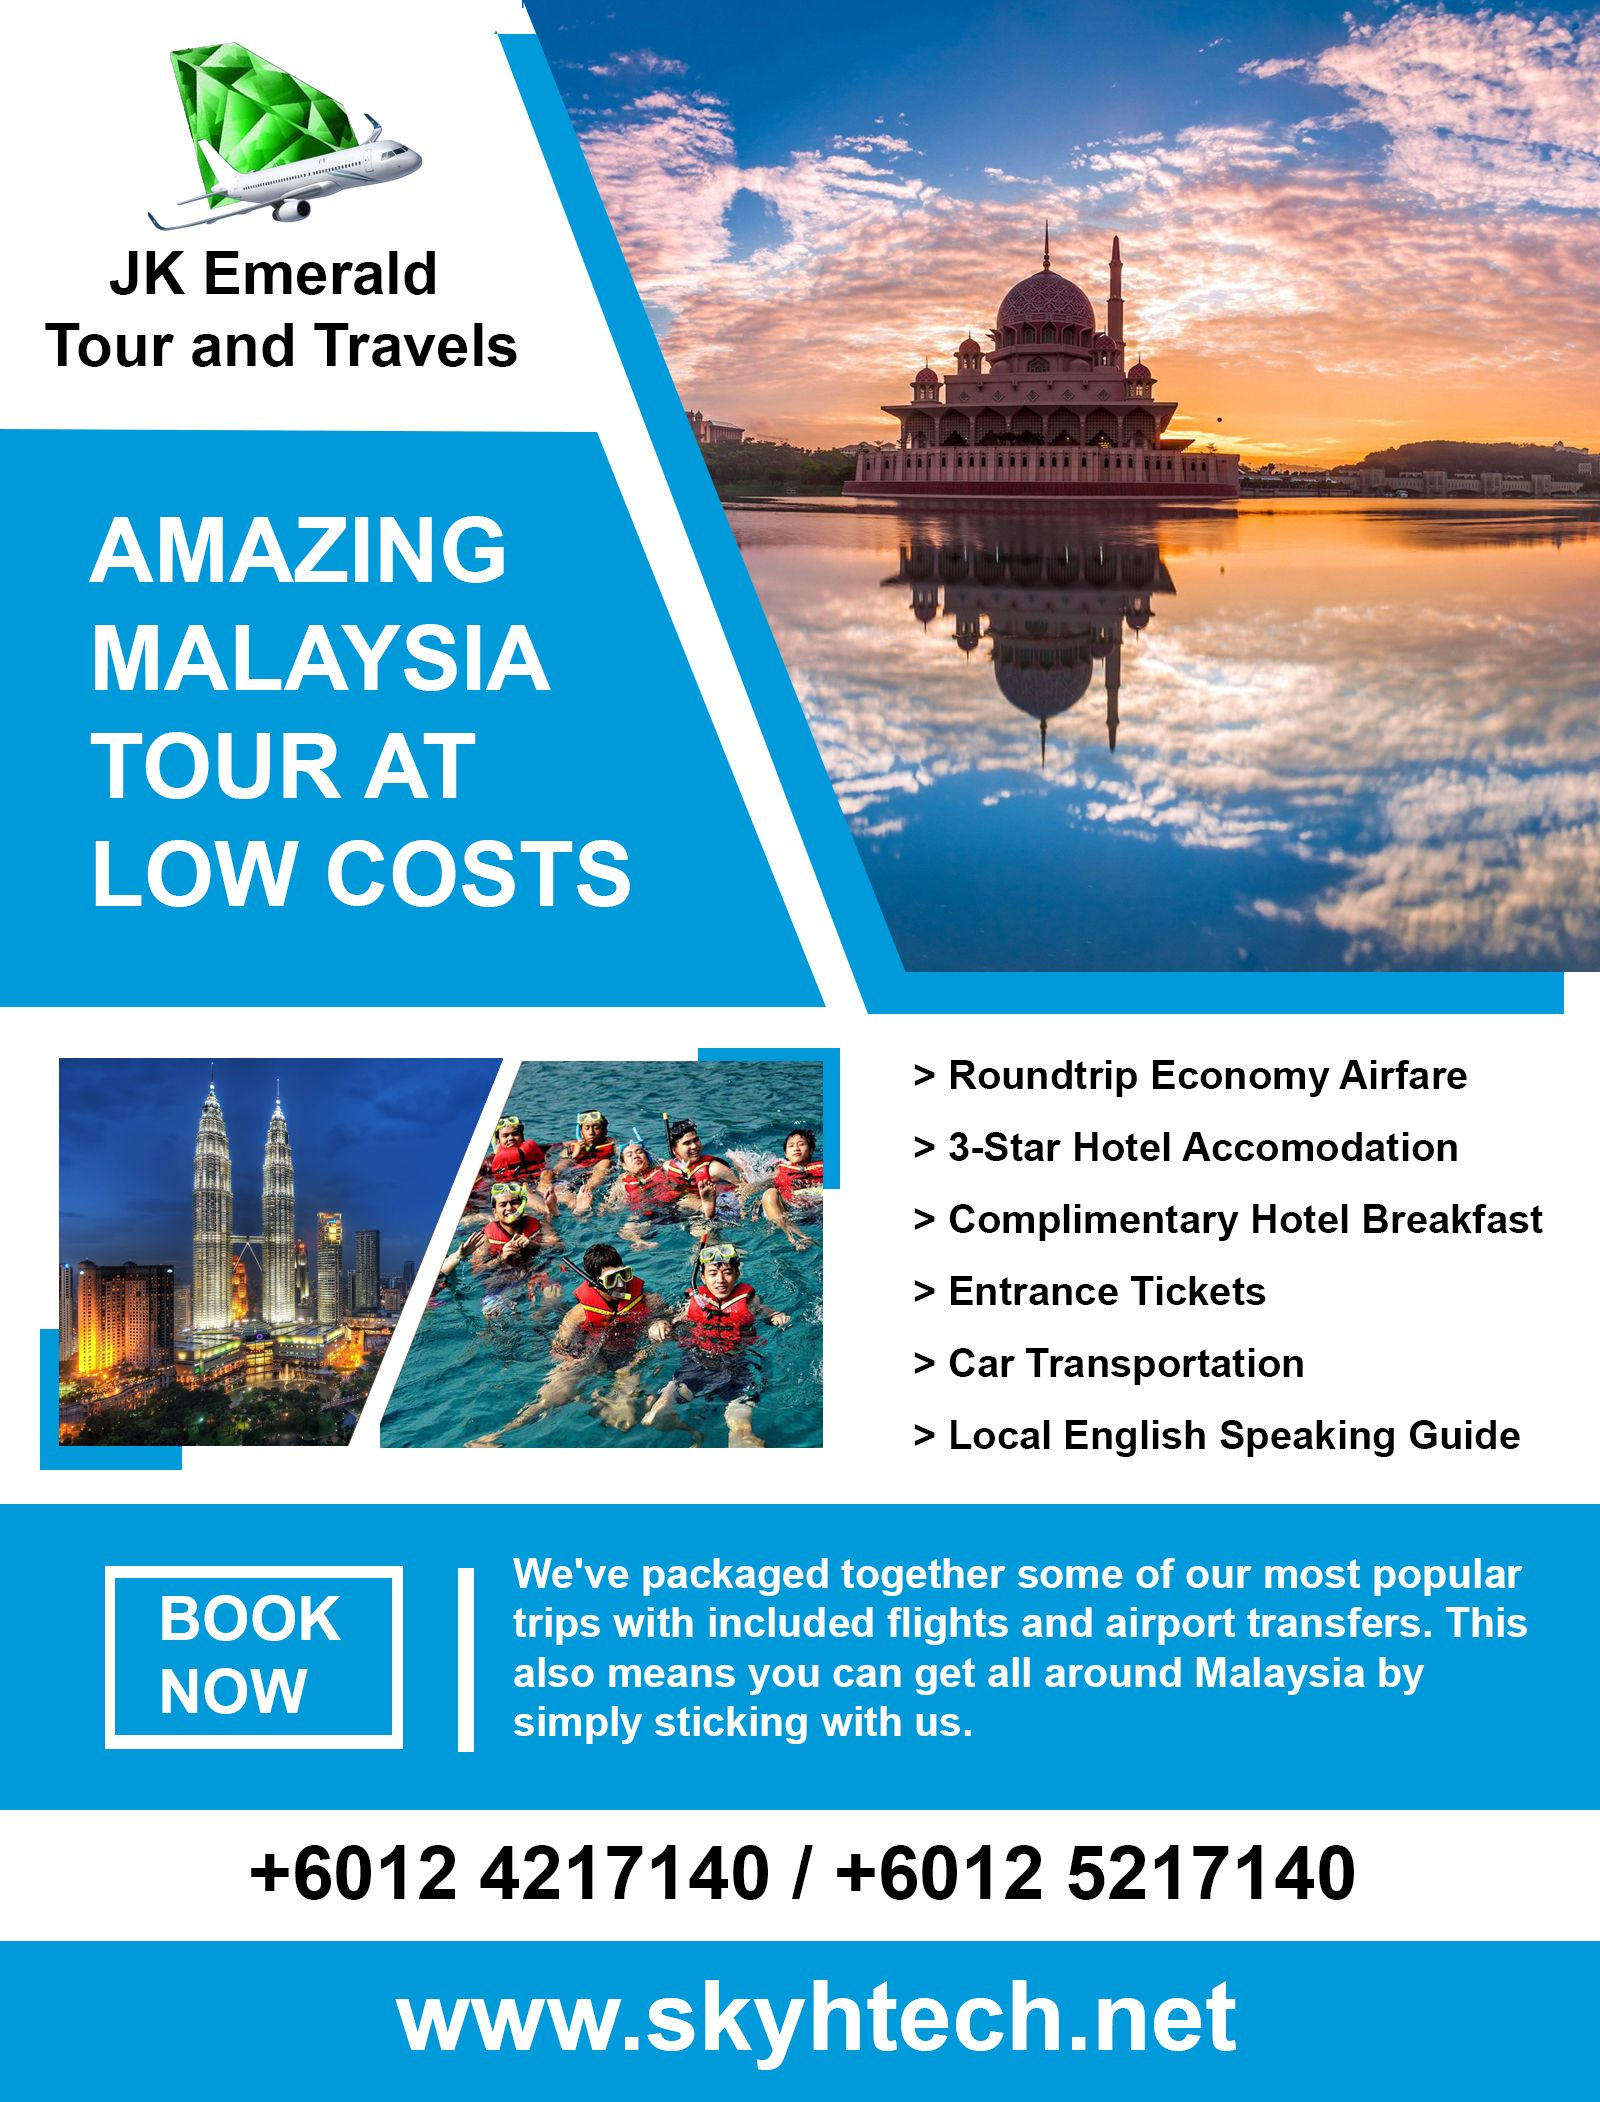 Affordable Informative and immersive our tours are for